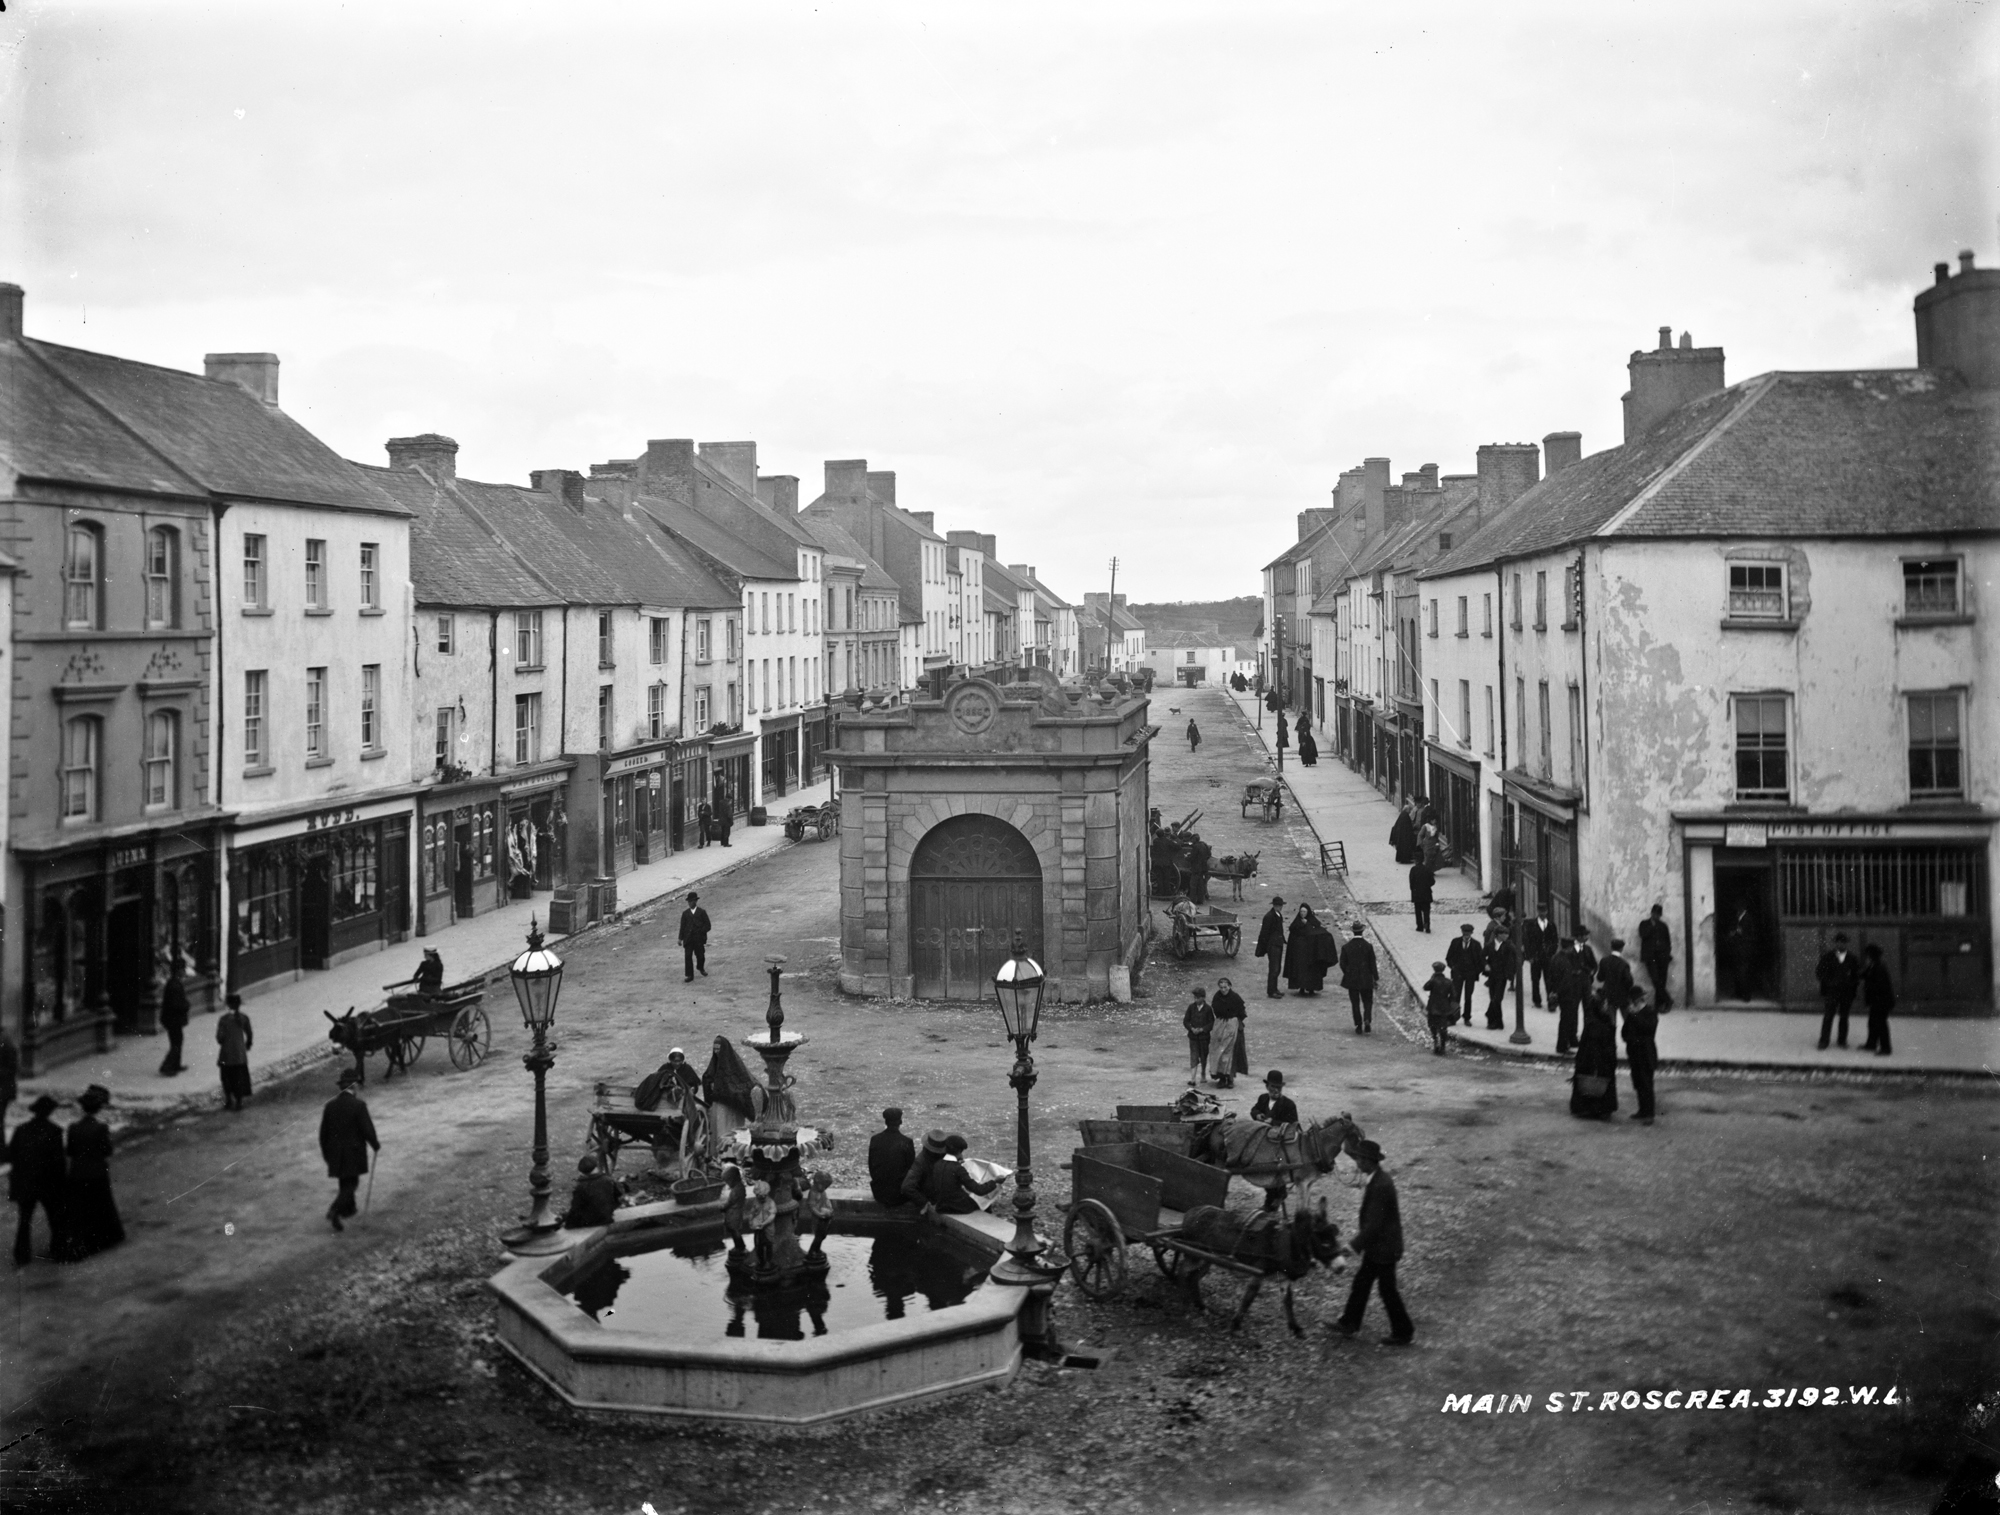 A hive of activity - Main Street, Roscrea, Co. Tipperary